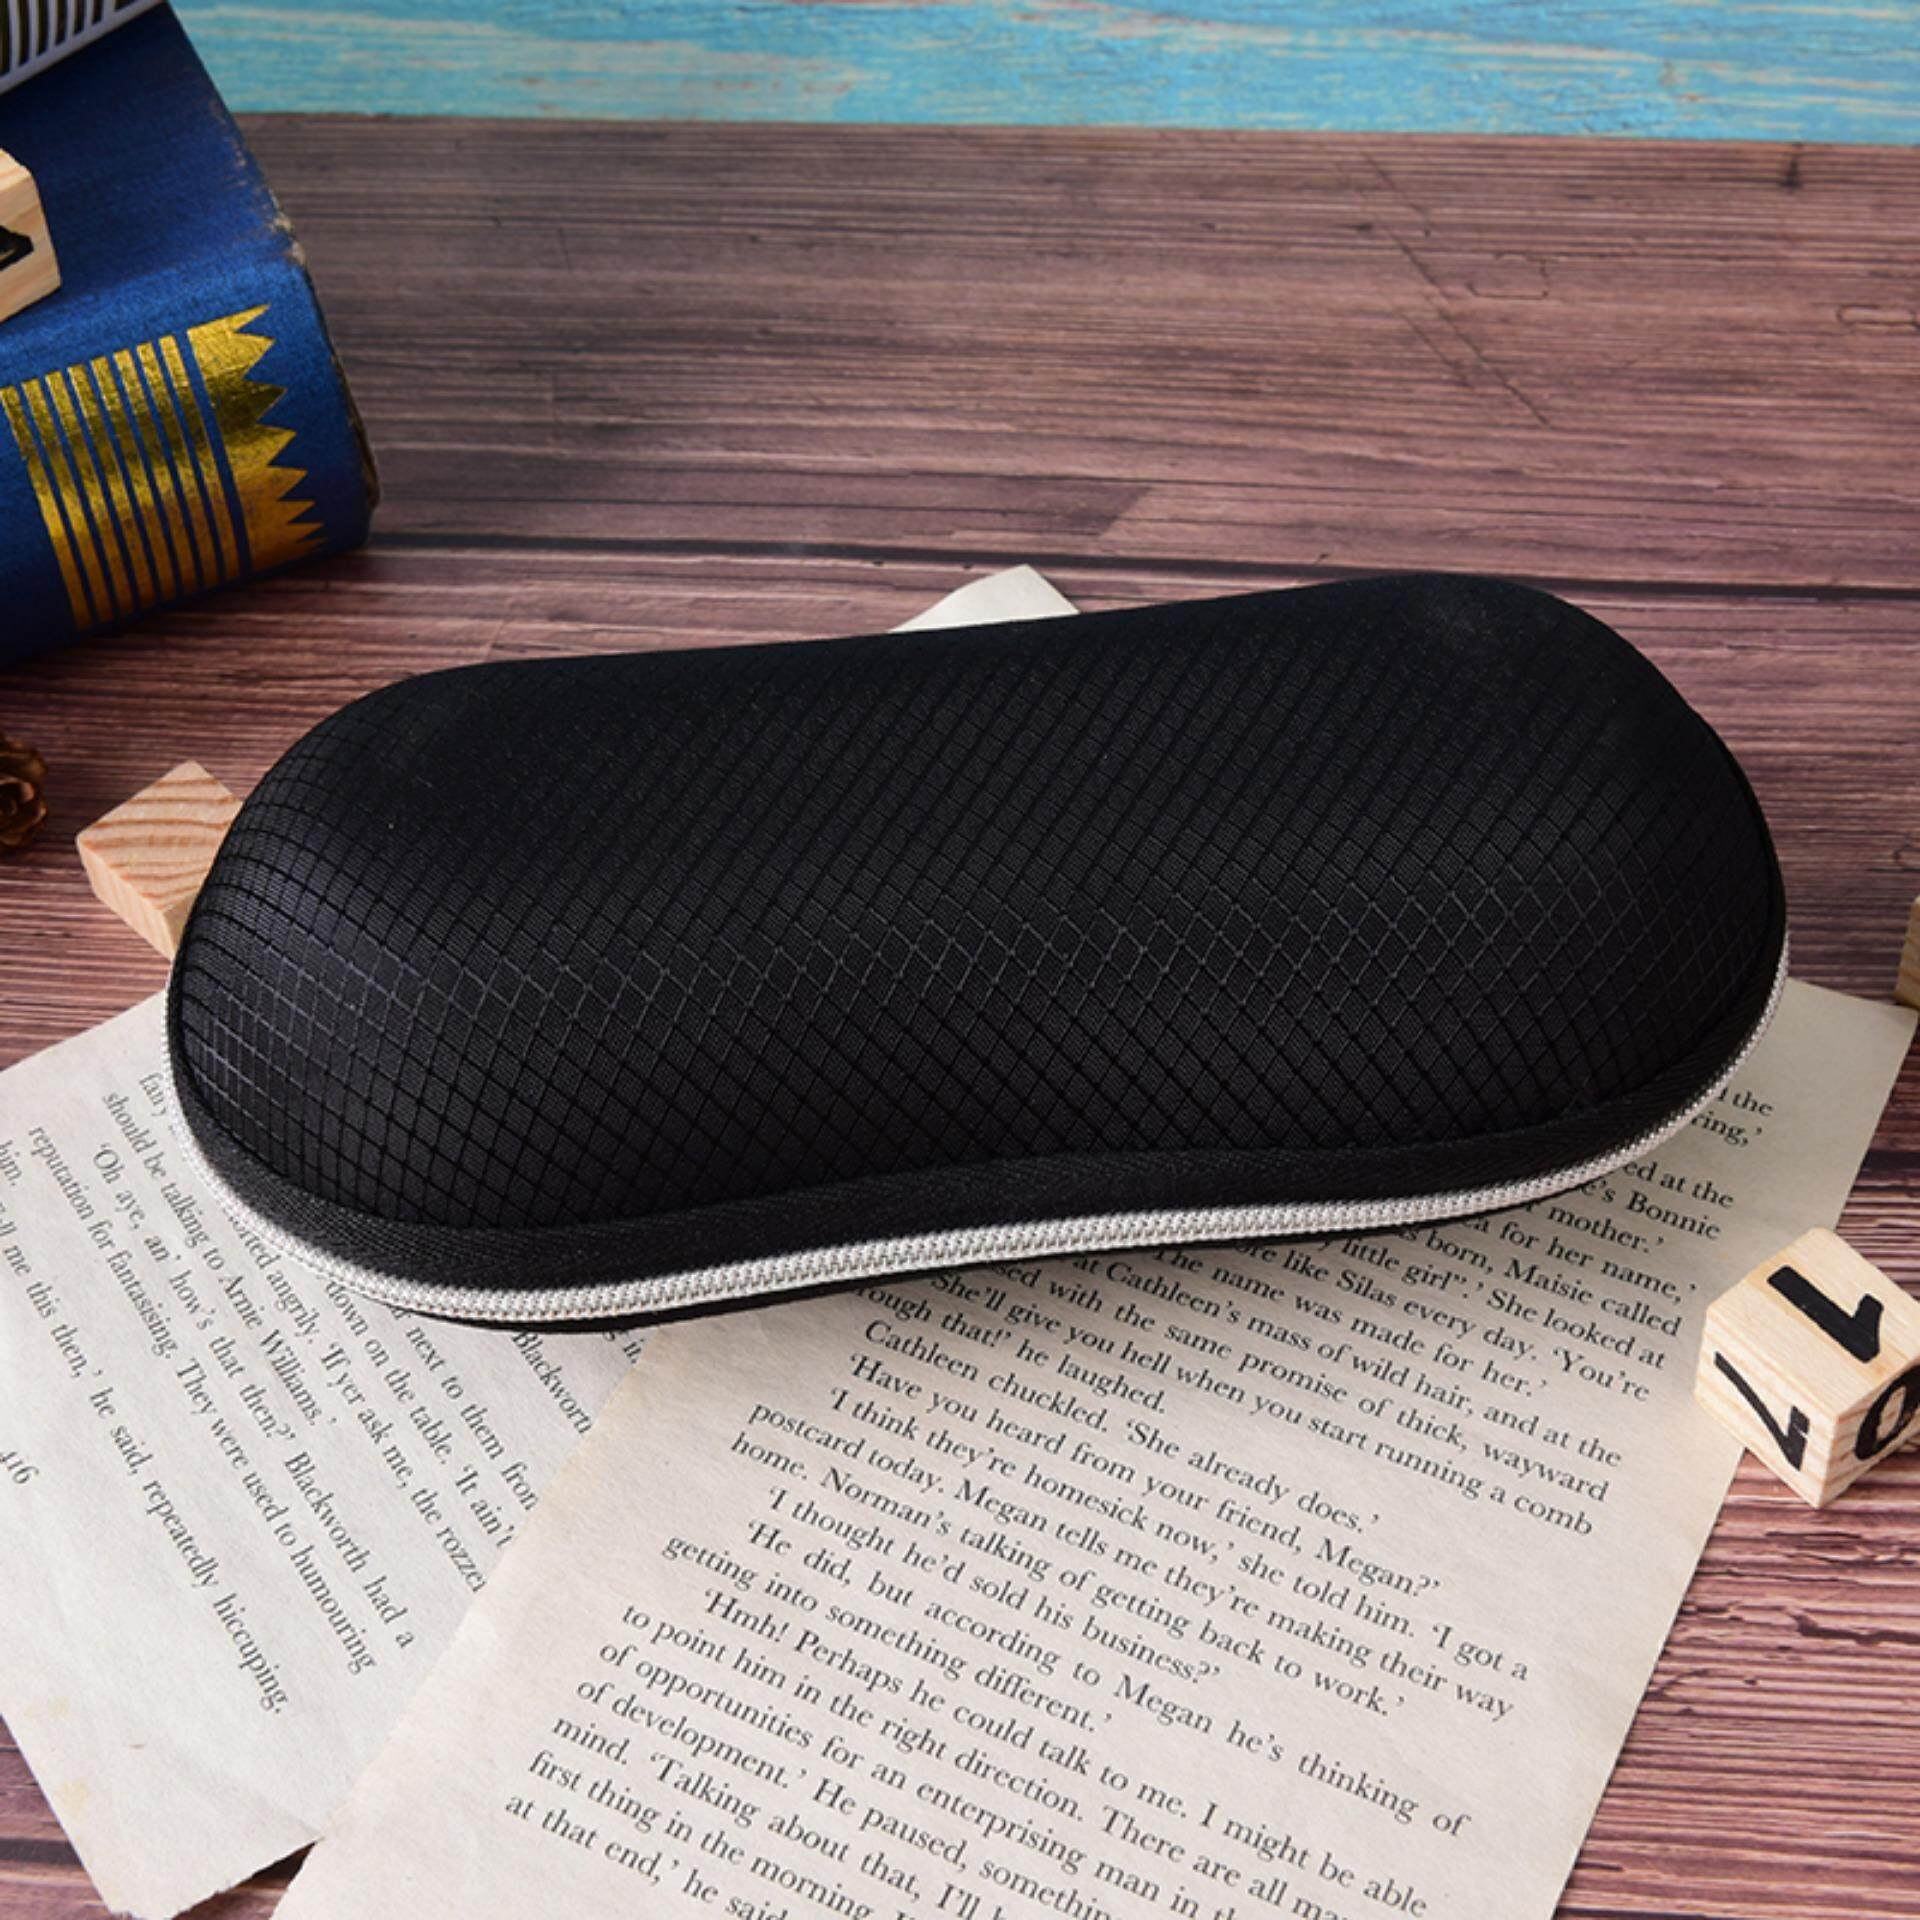 7fc11809617 Eyewear Cases Cover Sunglasses Case For Women Glasses Box Zipper Sunglasses  Case